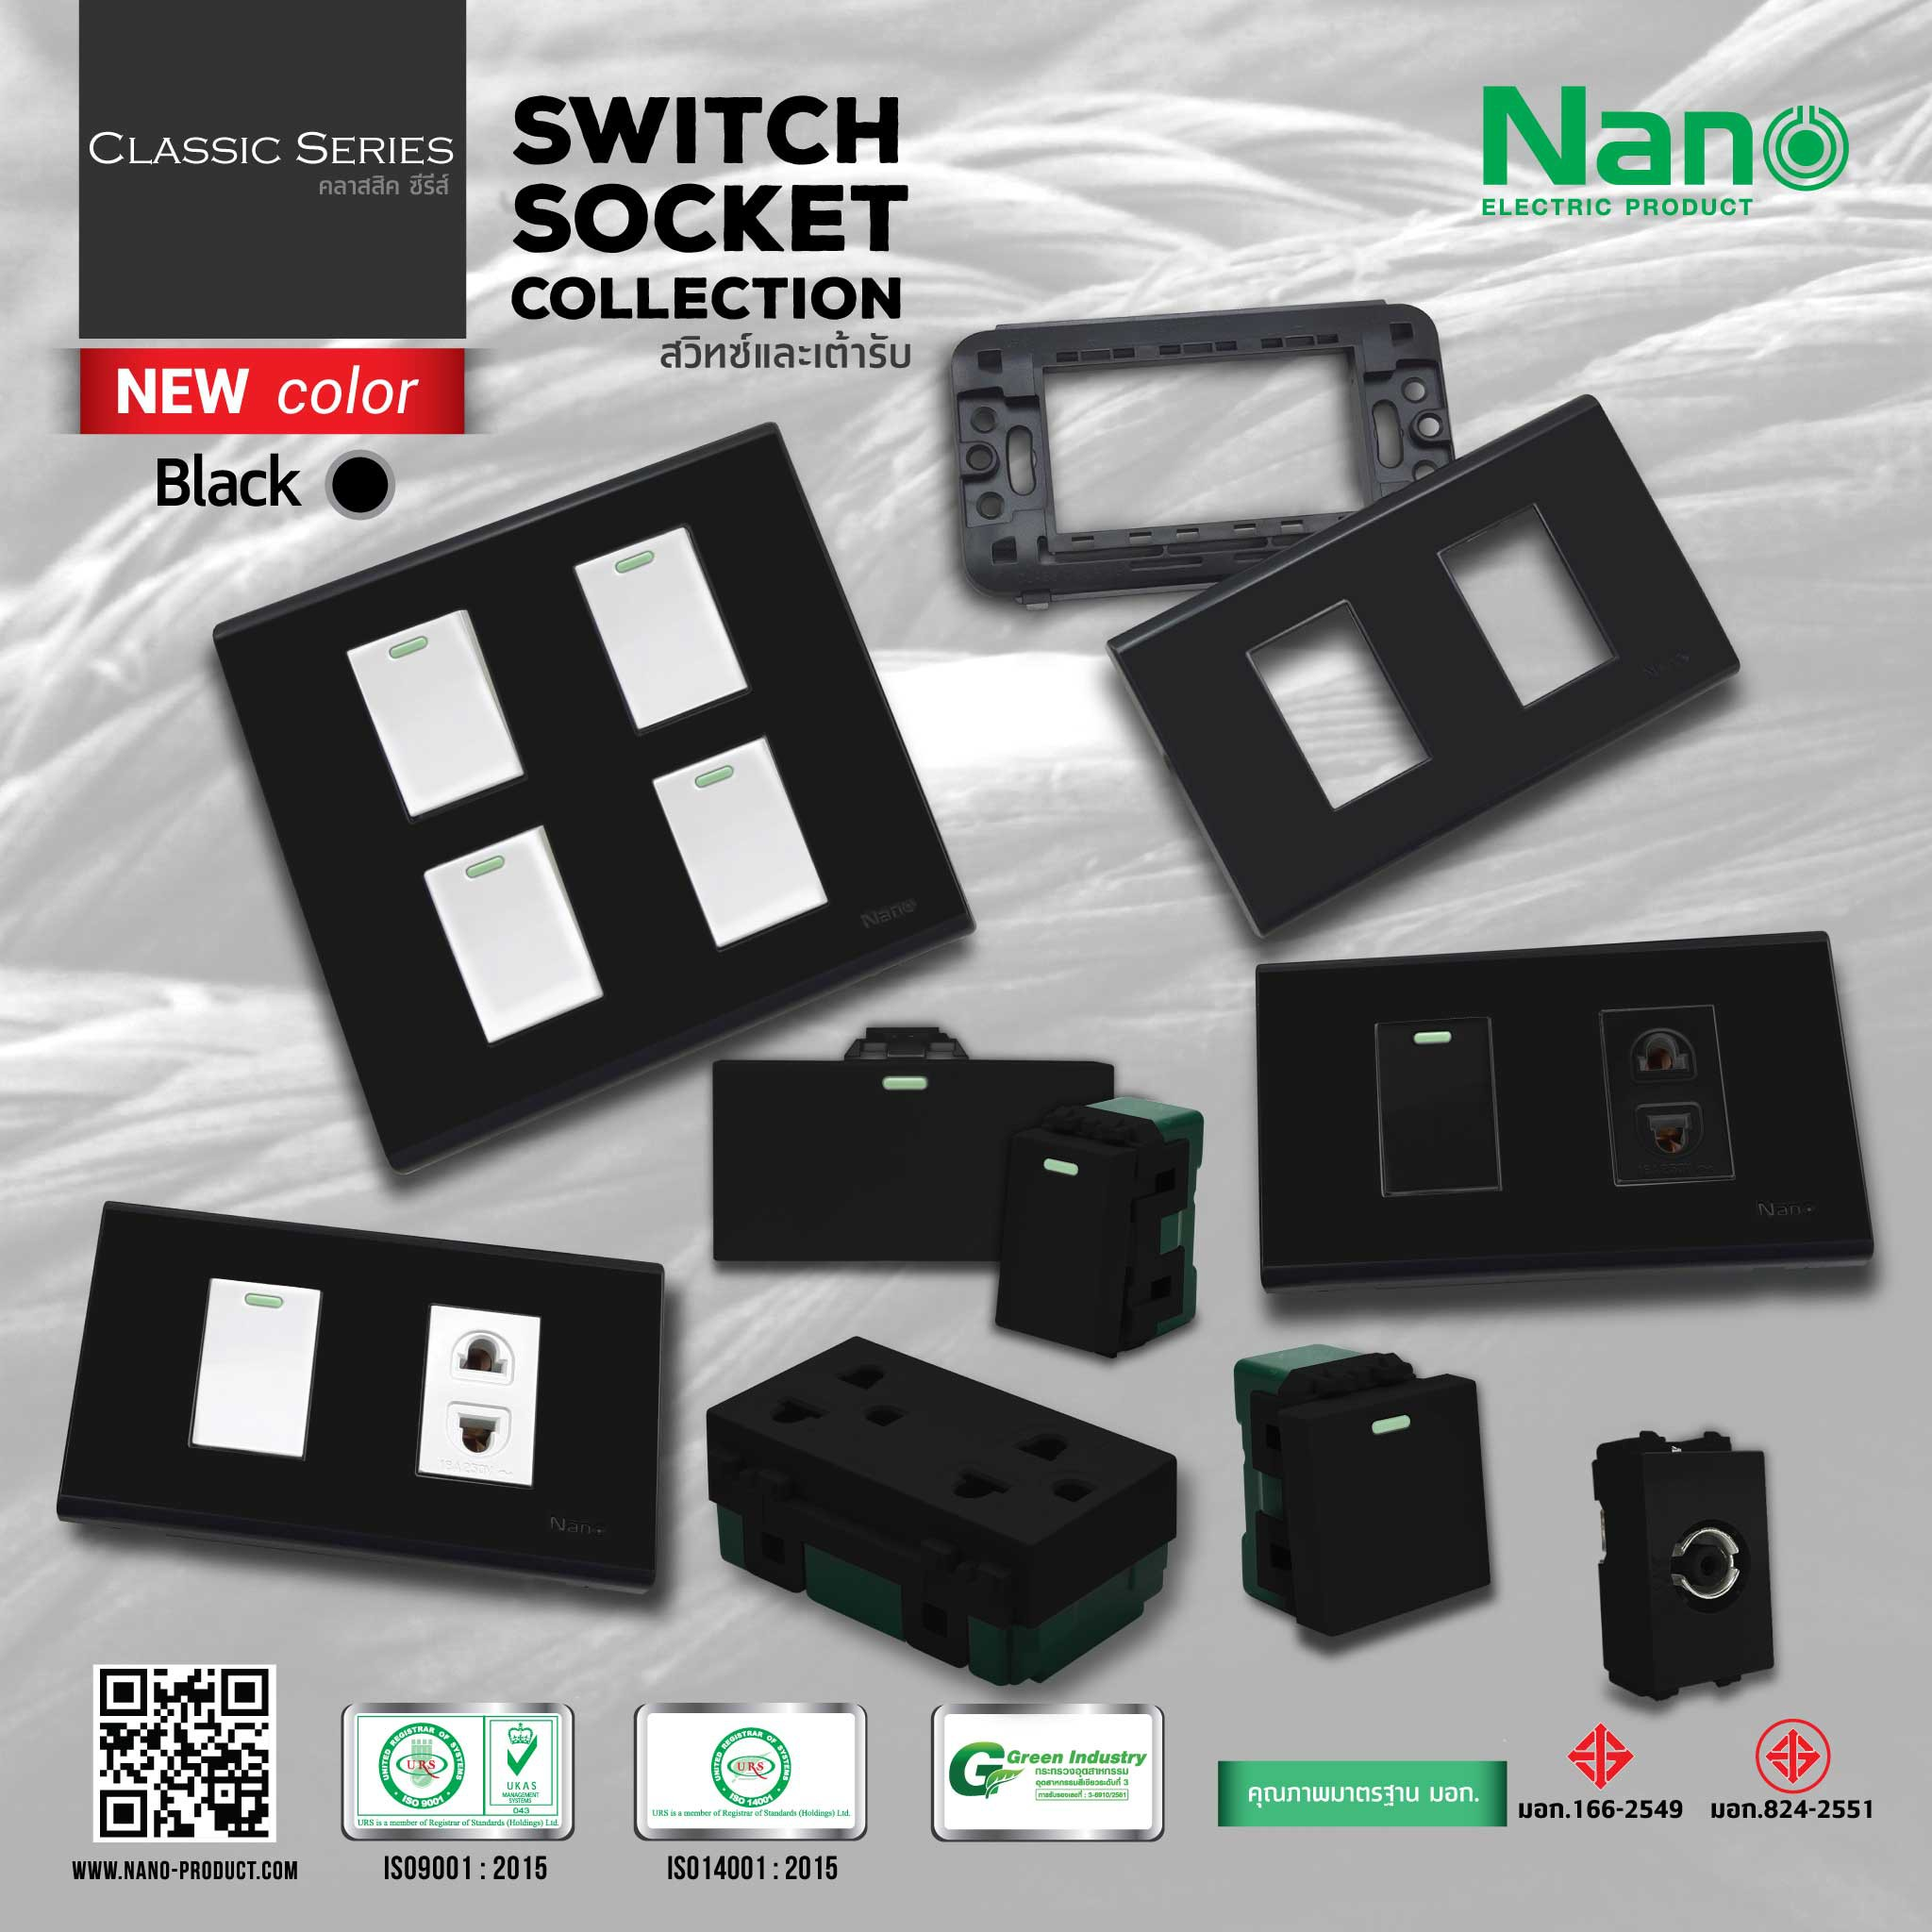 Nano Electric Product